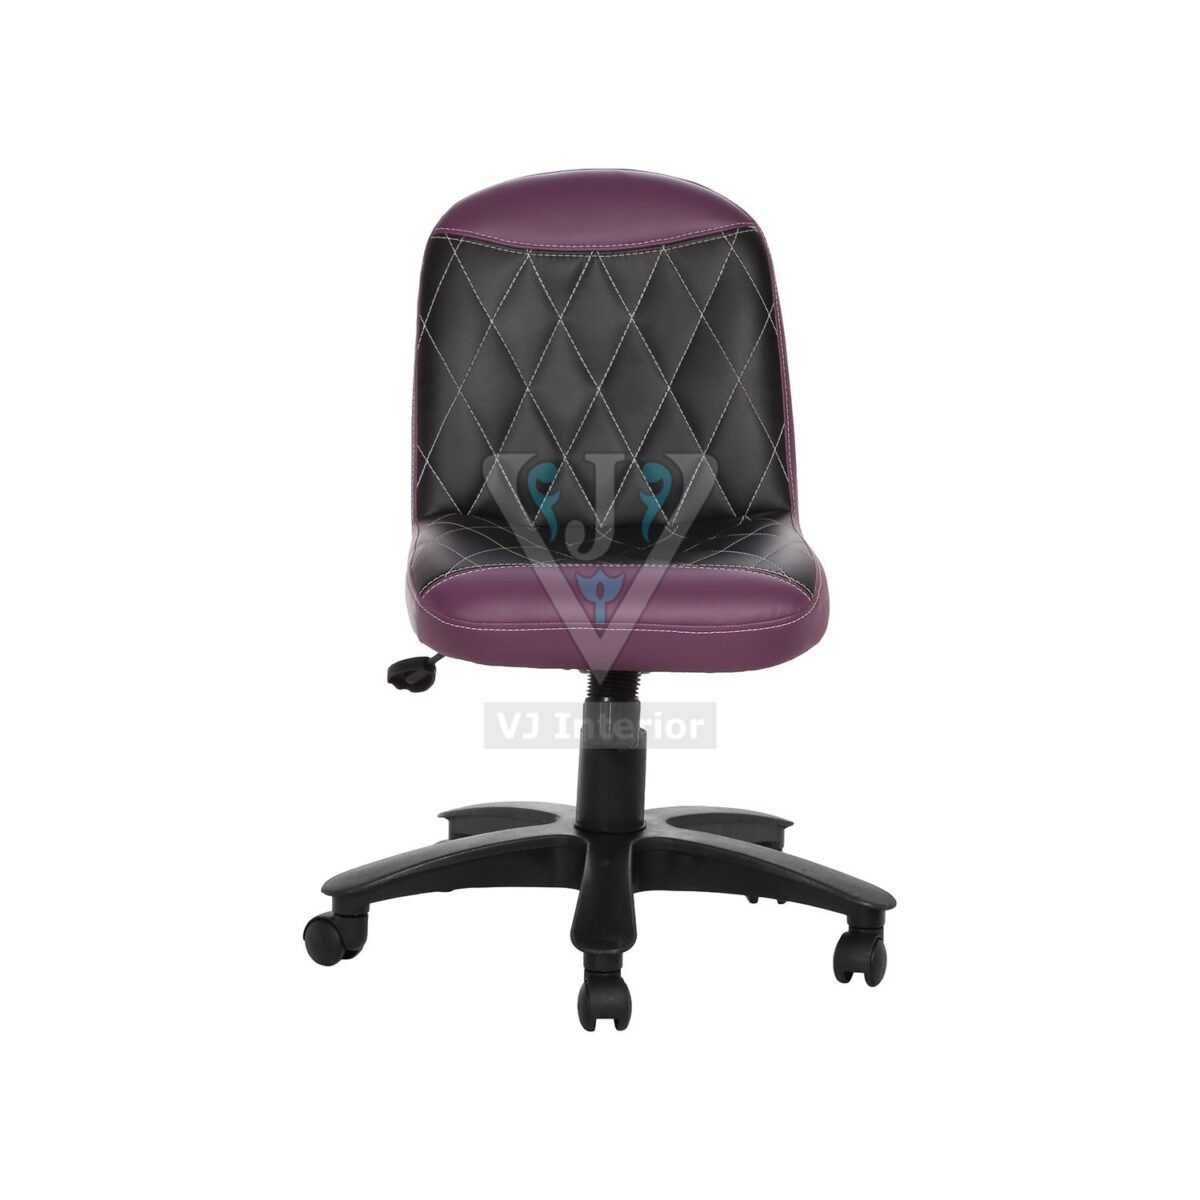 THE LIBRANEJAR LB WORKSTAION CHAIR PURPLE AND BLACK